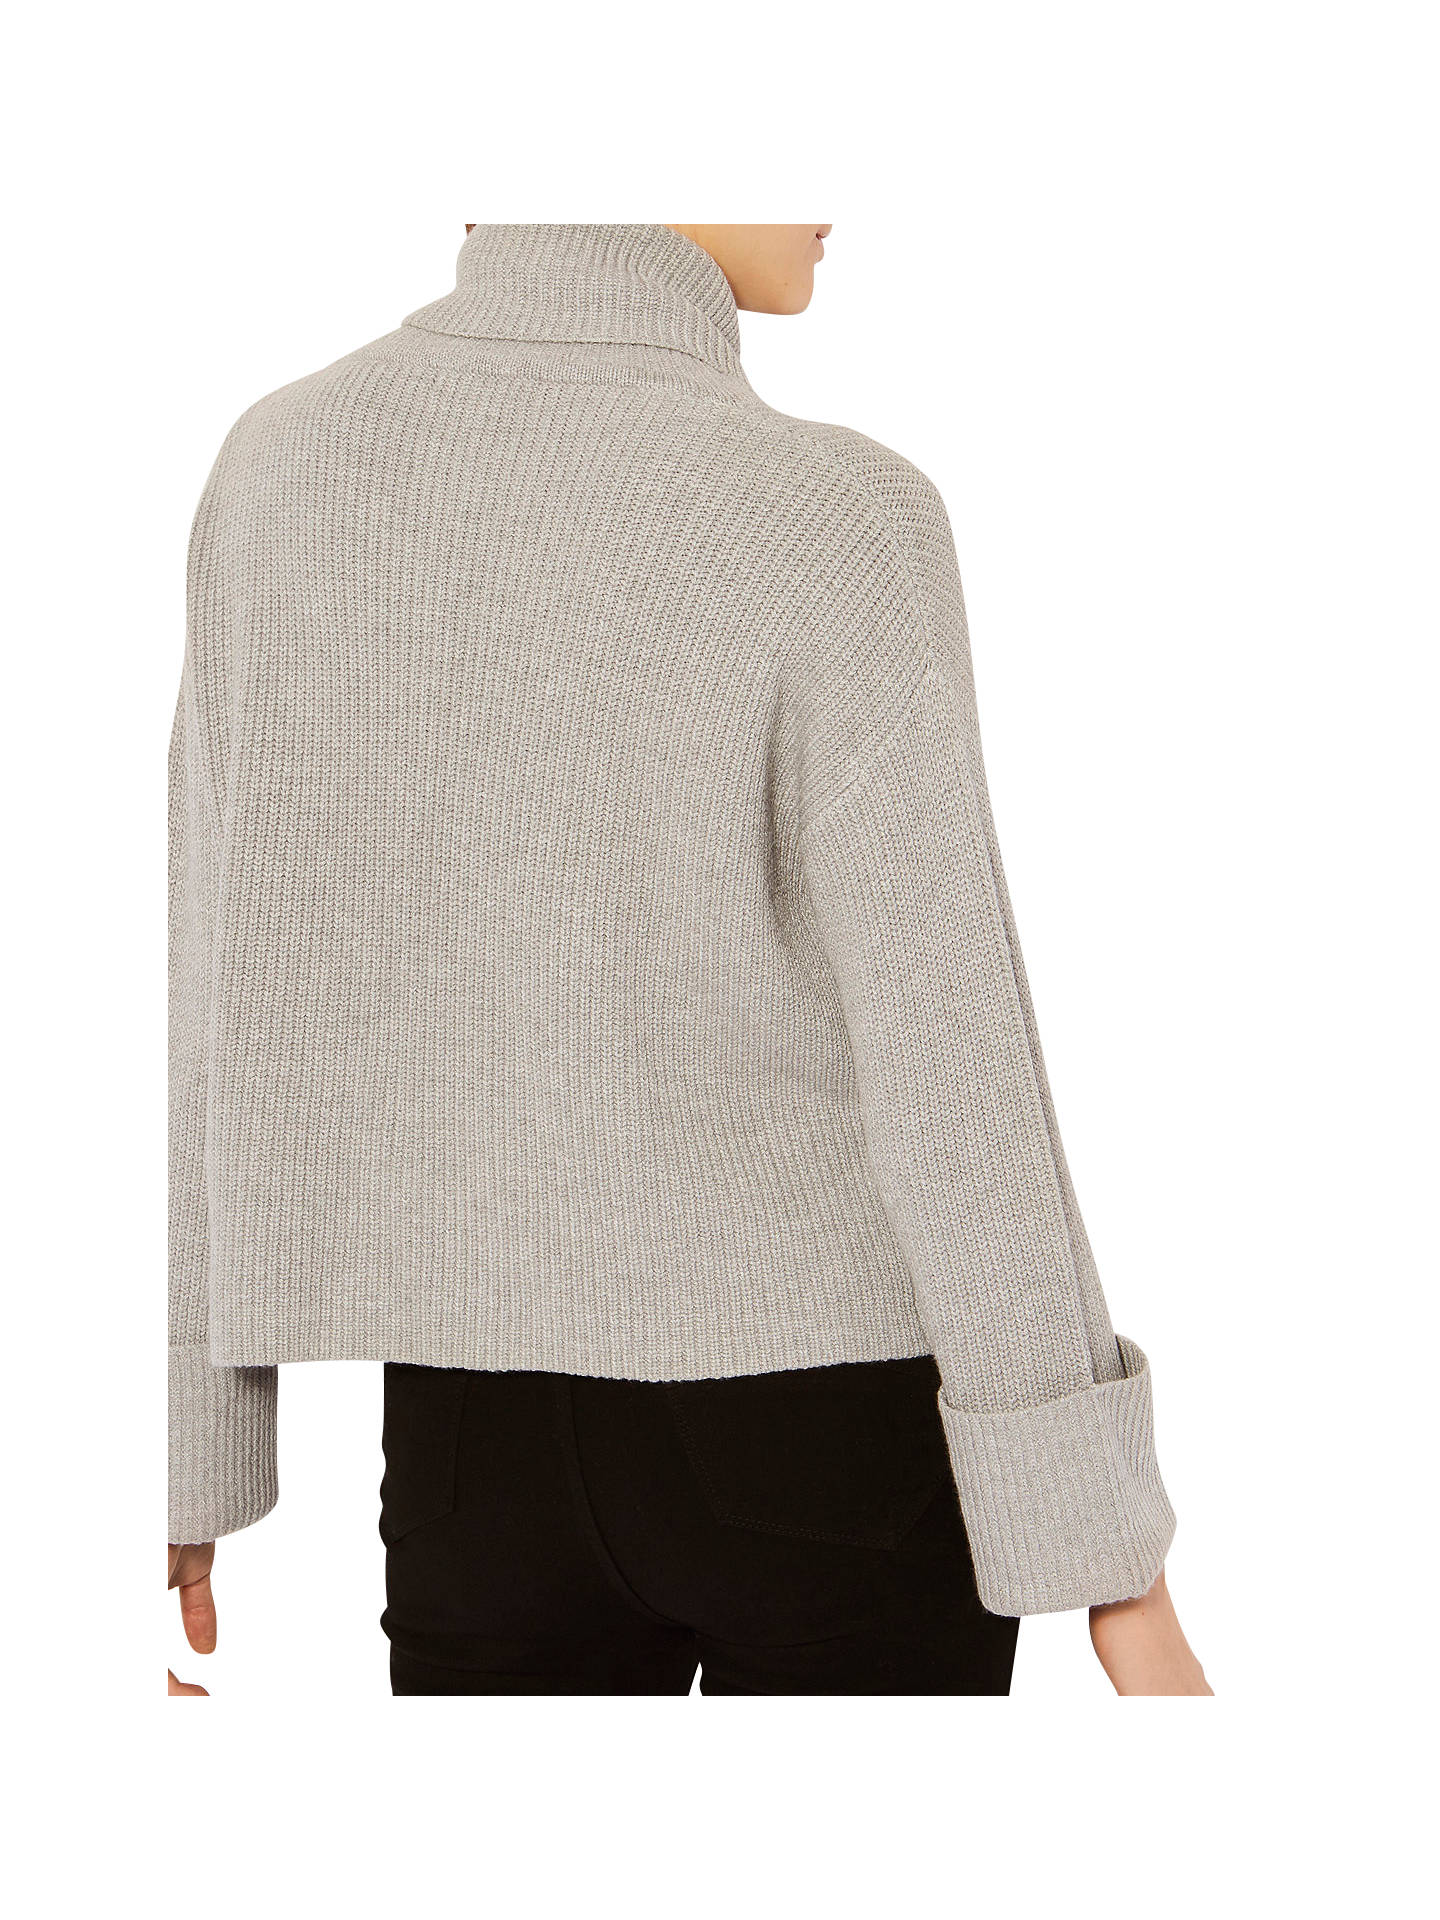 5f6fe537f021c2 ... Buy Karen Millen Chunky Zip Rib Jumper, Grey, XS Online at  johnlewis.com ...